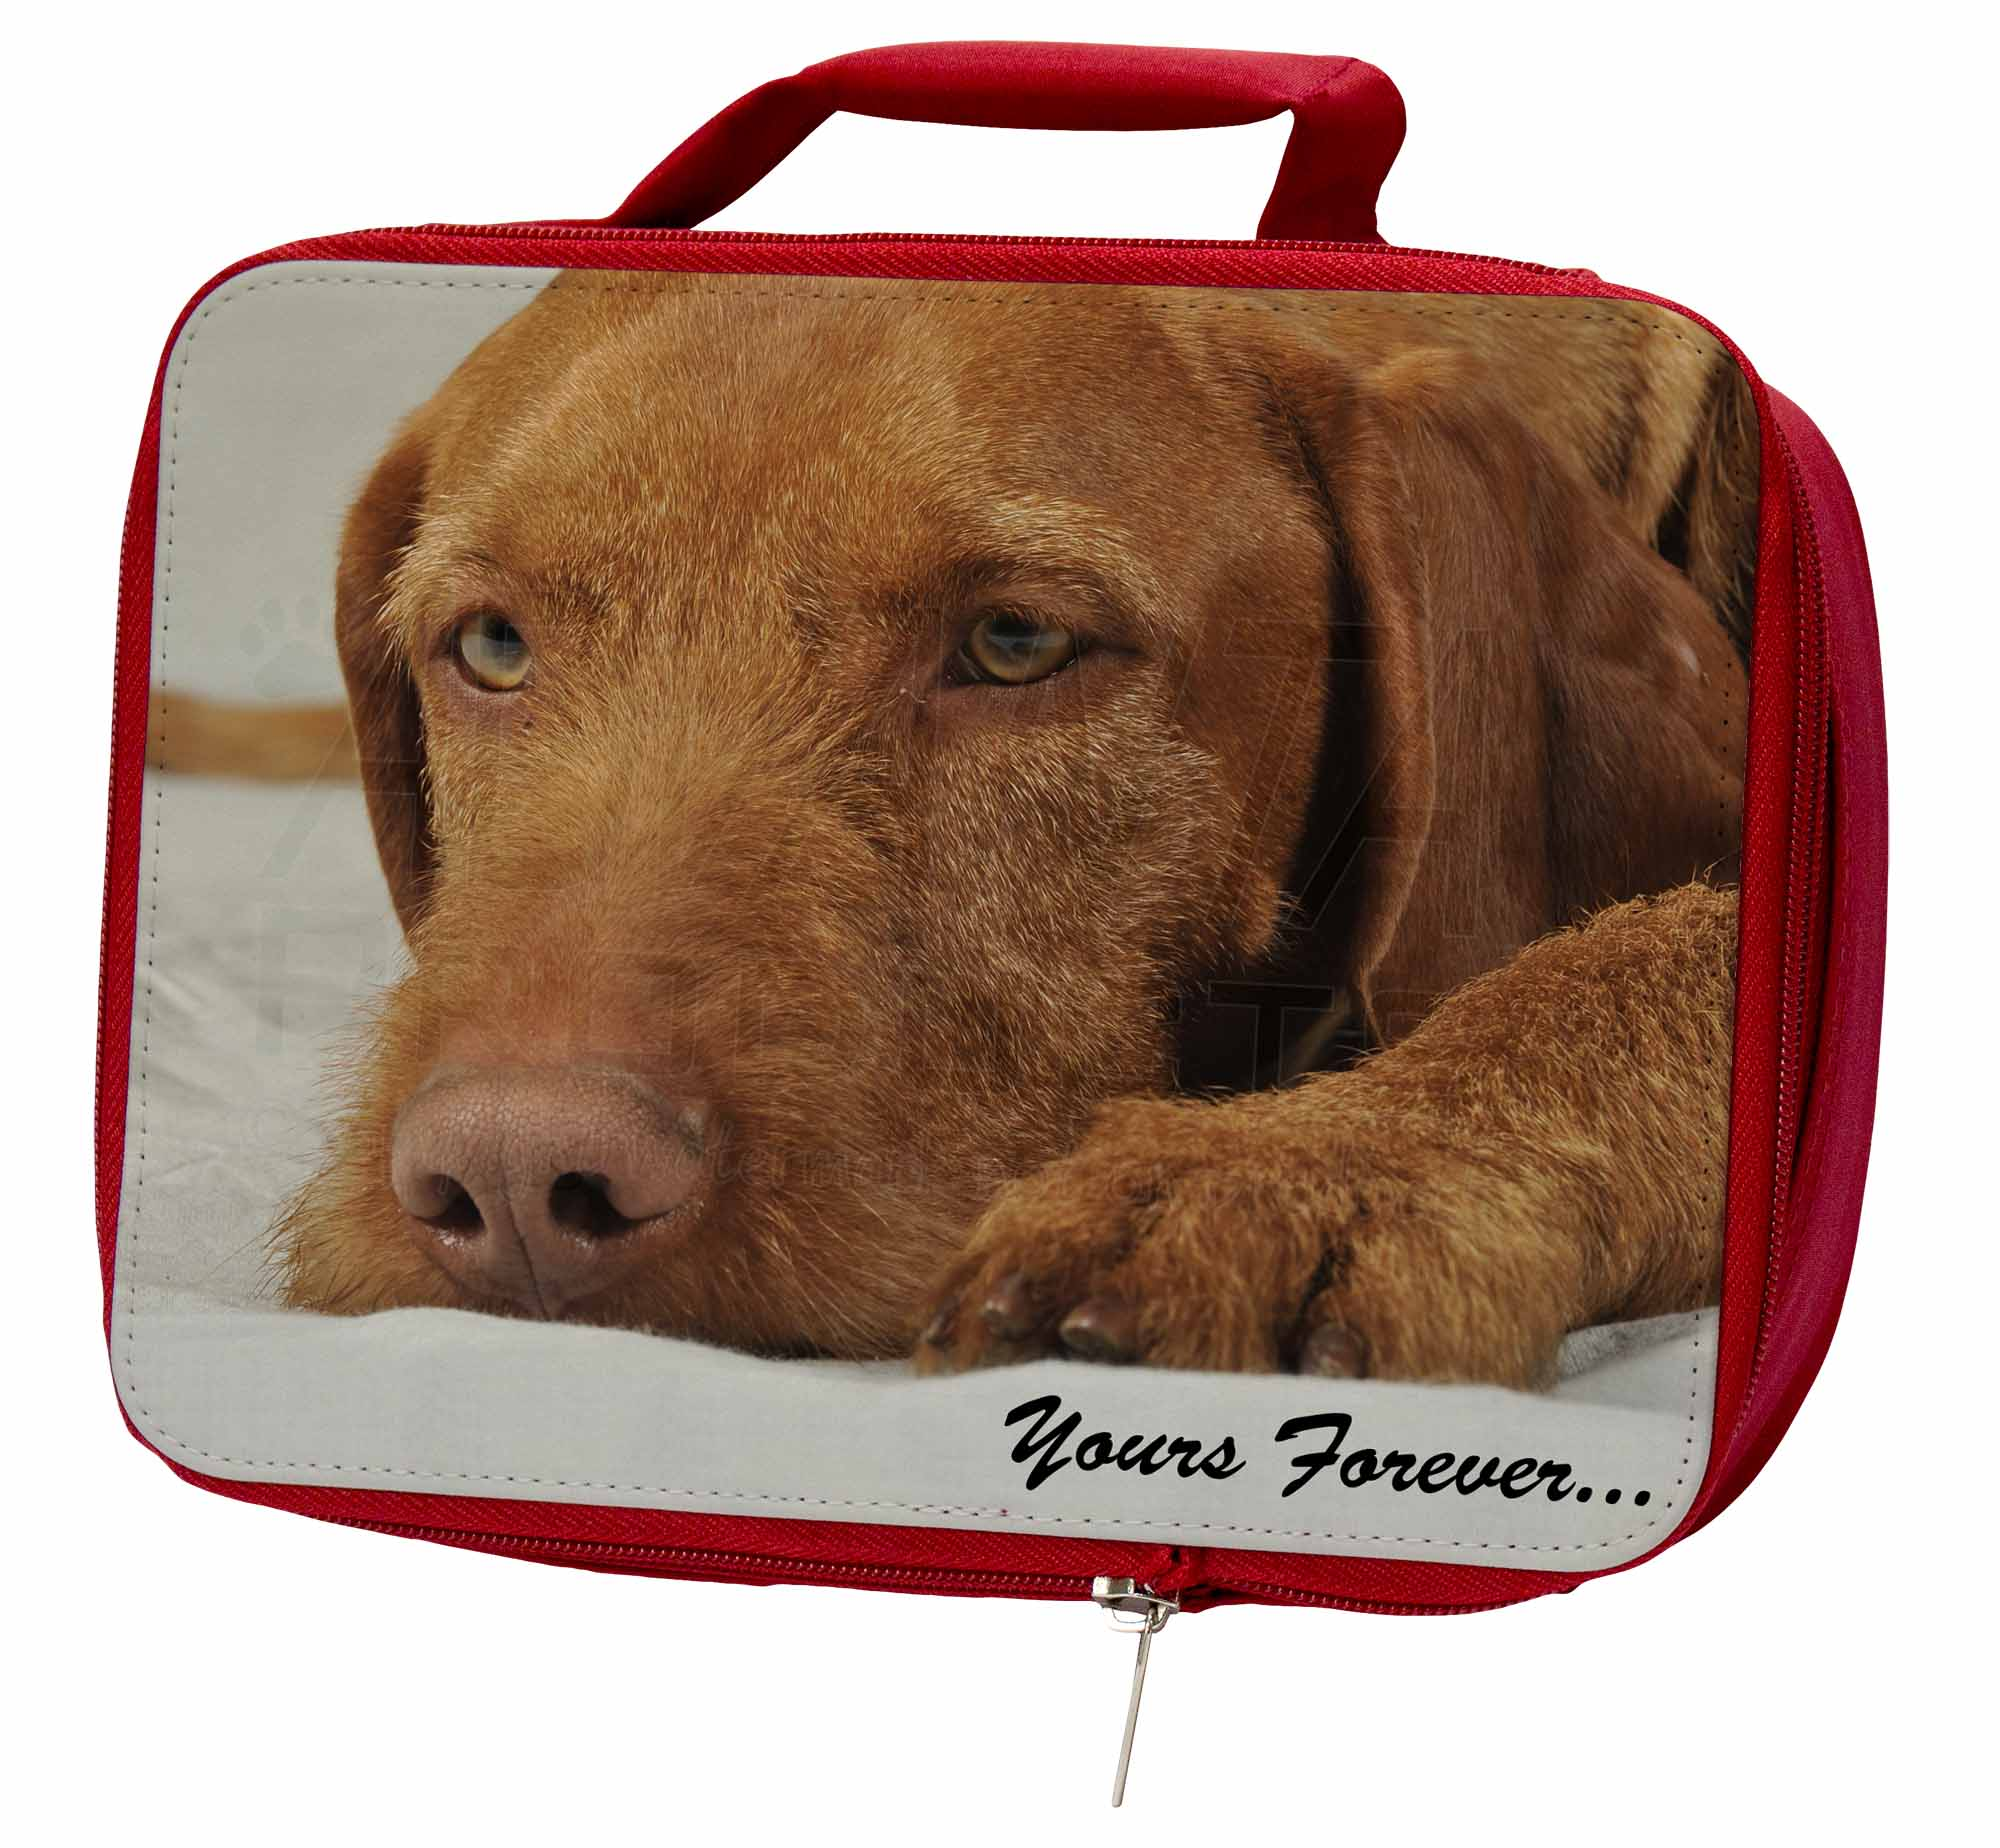 Hungarian Vizsla 'Yours Forever' Insulated AD-V3yLBR Red School Lunch Box/Picni, AD-V3yLBR Insulated 5b4d2d